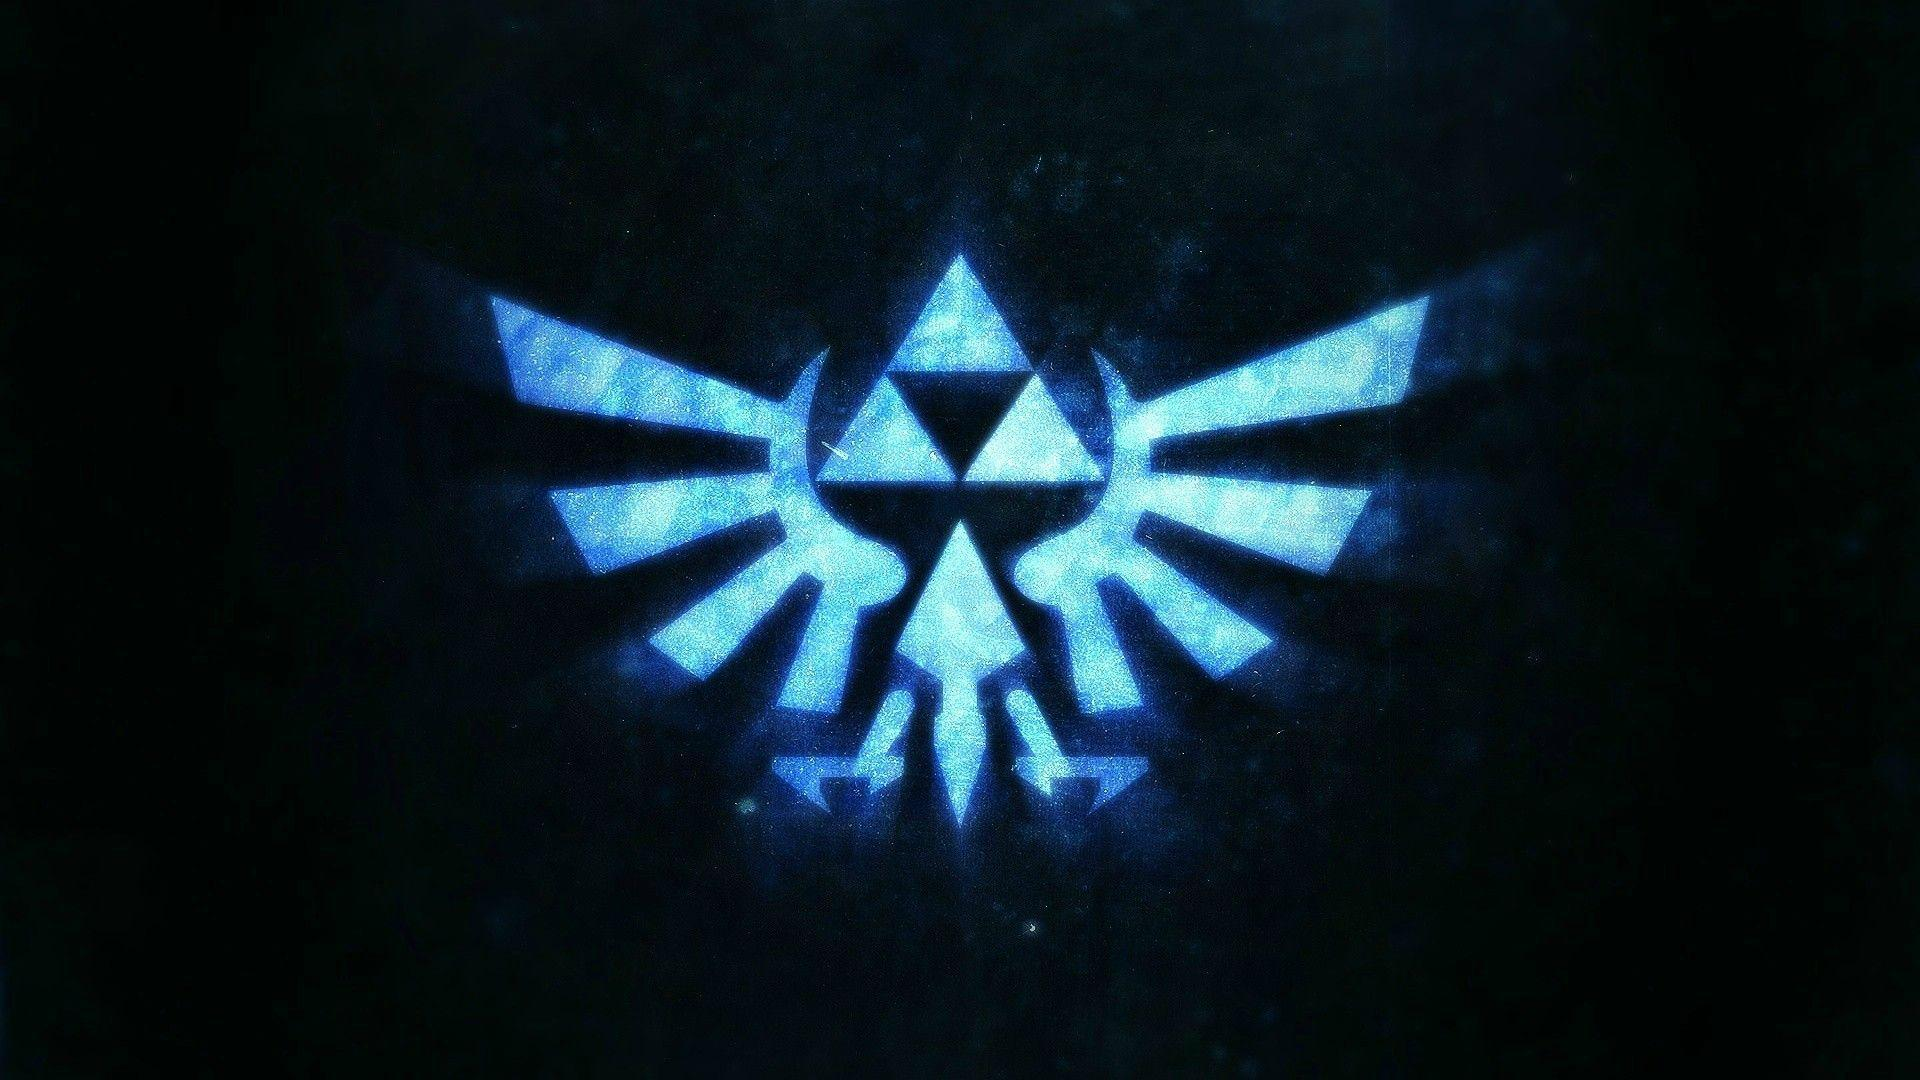 Gaming wallpapers games triforce